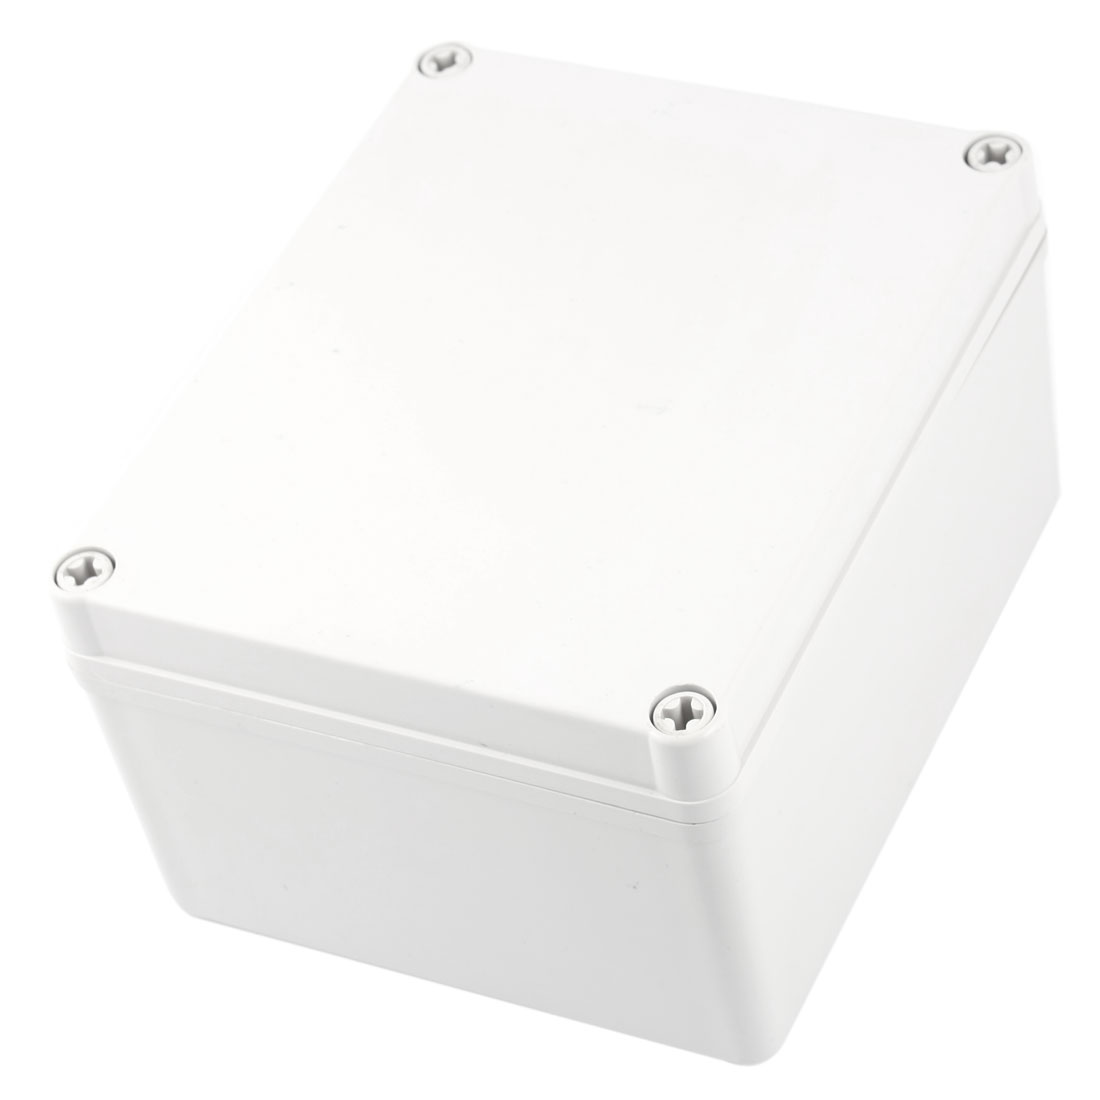 Waterproof Plastic Sealed Electric Junction Enclose Box Power Protection Case 170mm x 135mm x 95mm